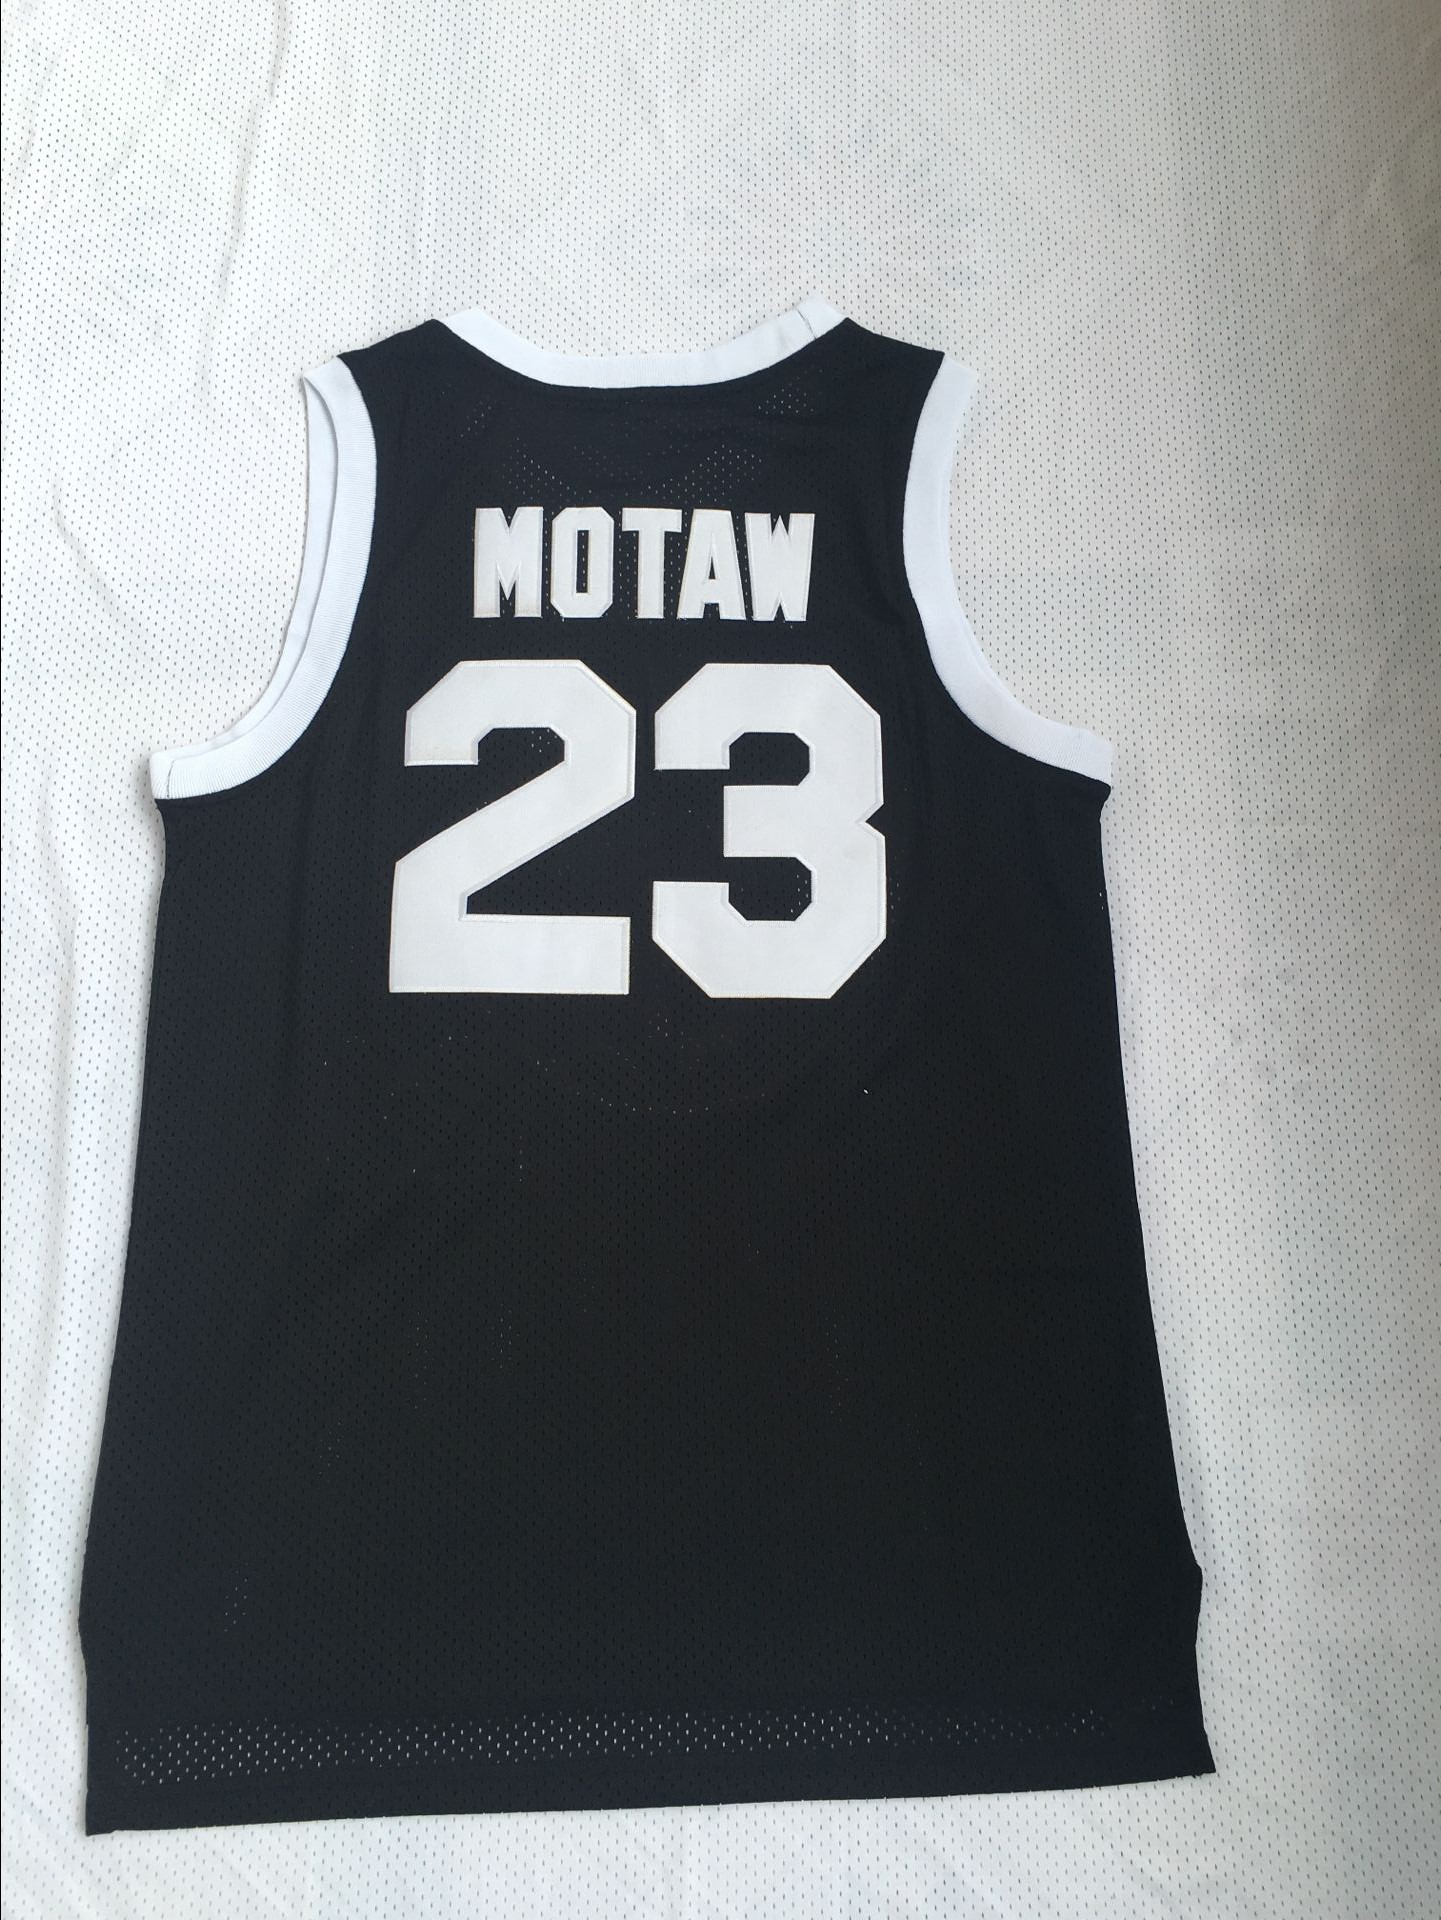 Tournament ShootOut 23 Motaw Black Throwback Movie Basketball Jersey